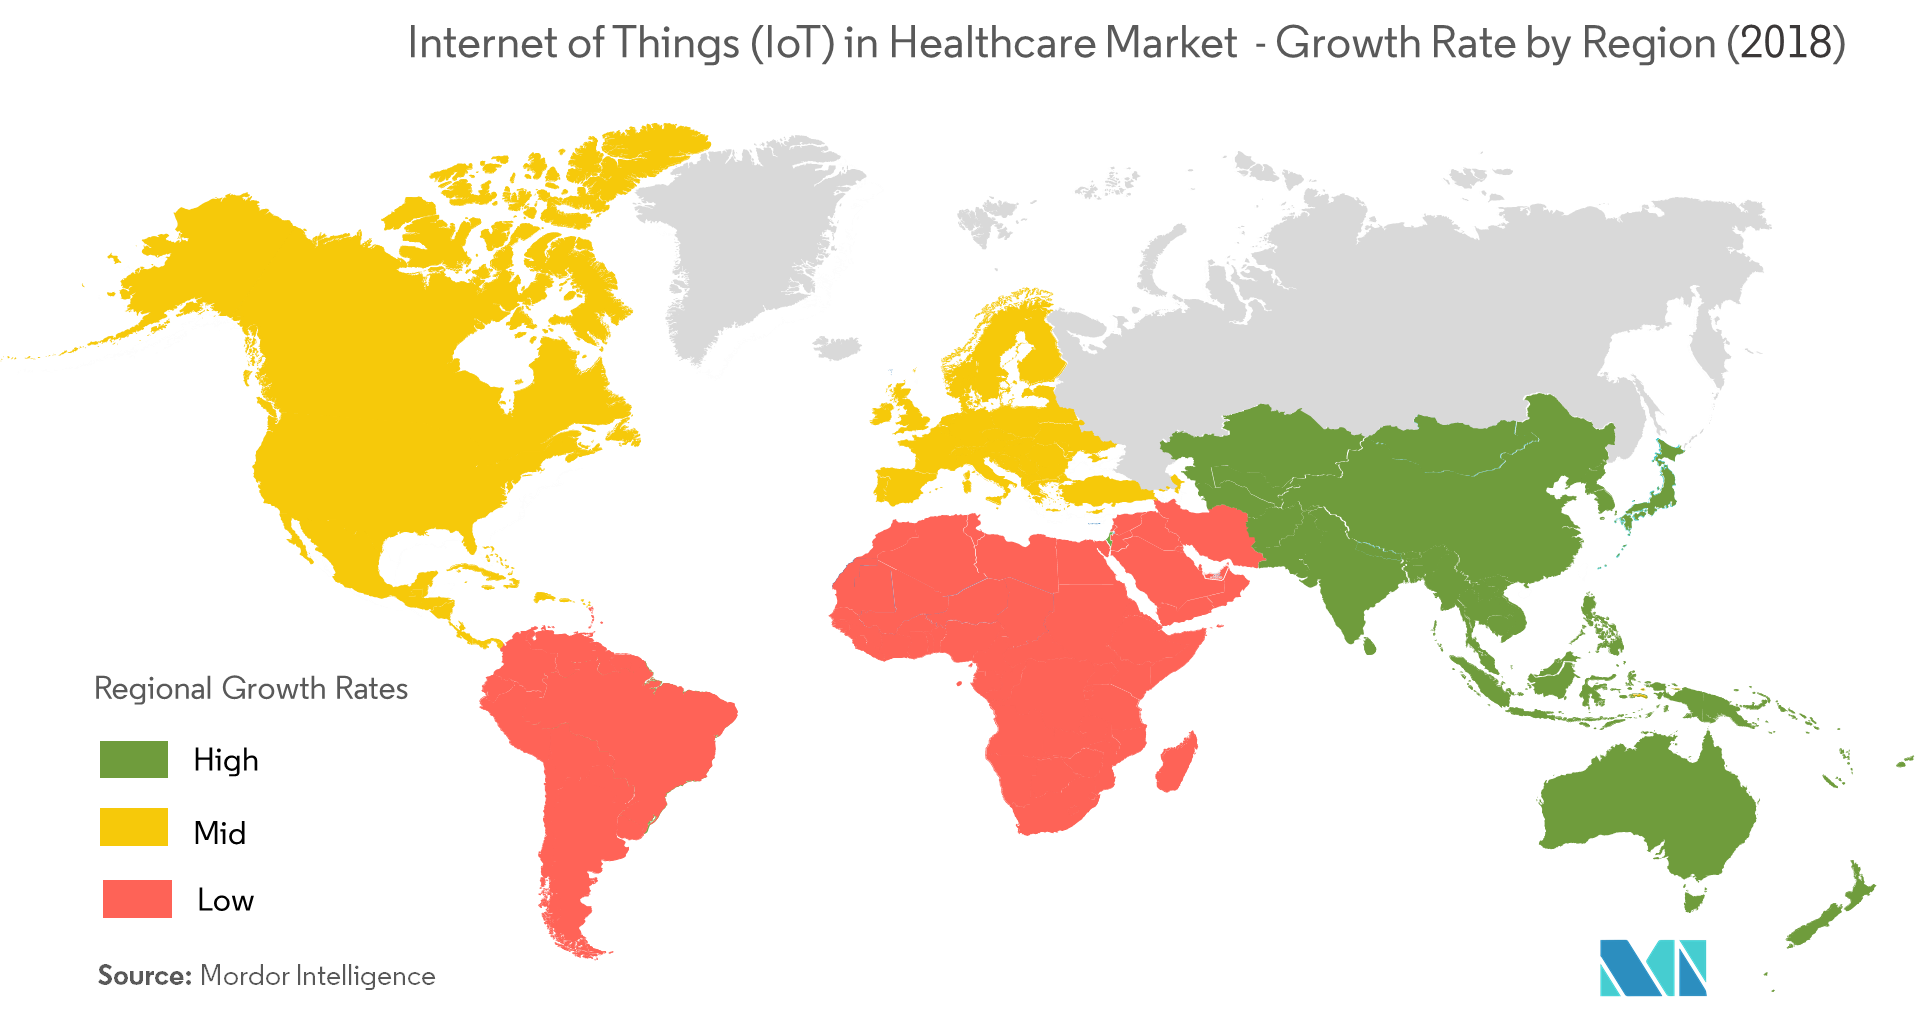 Internet of Things (IoT) in Healthcare Market pic3